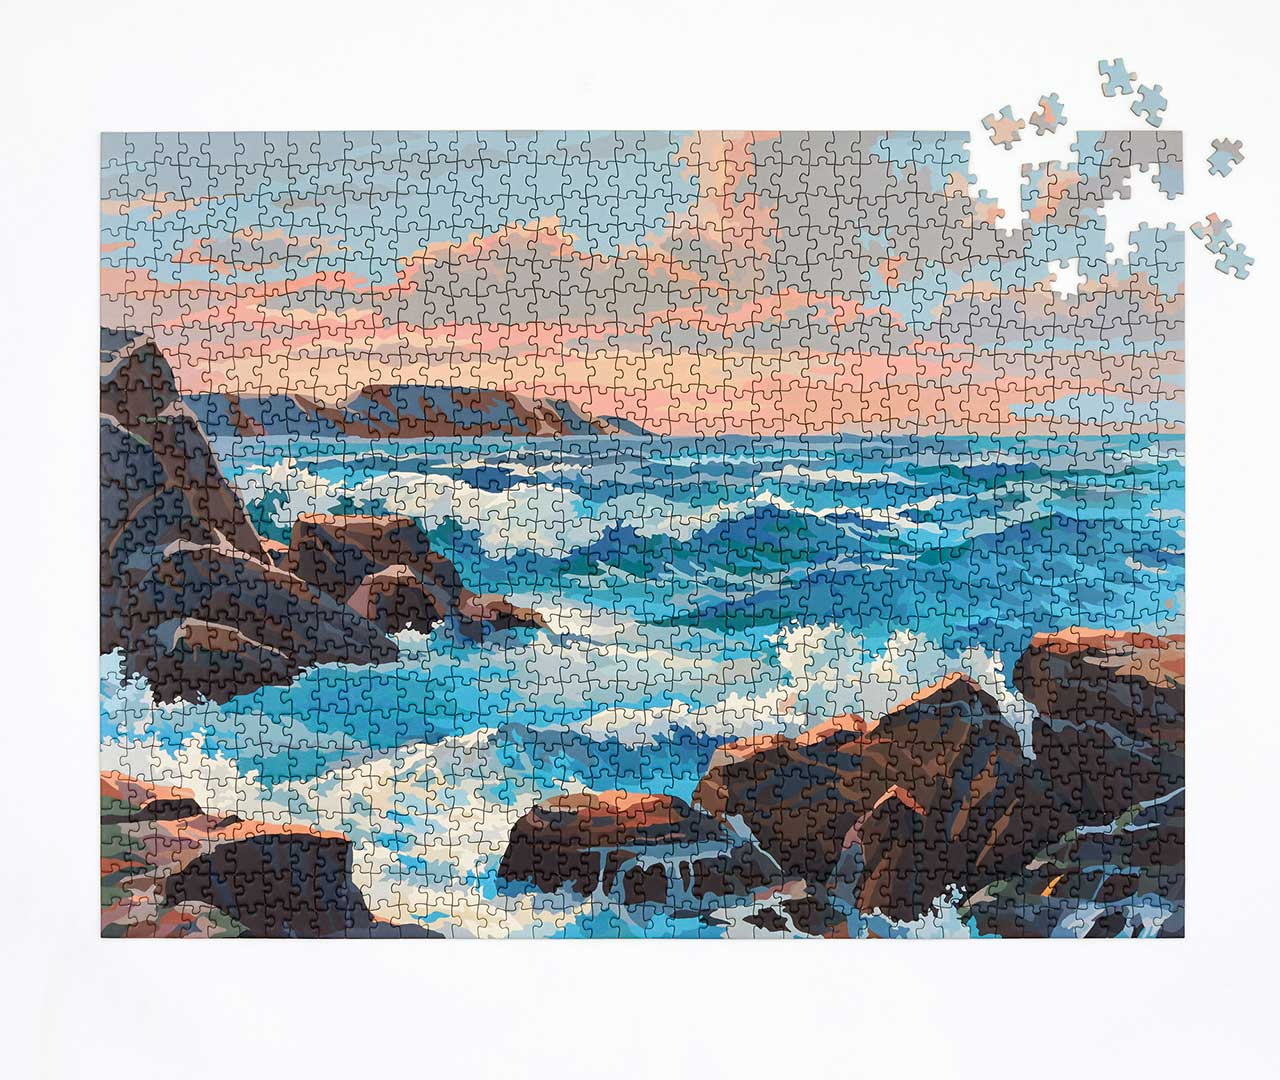 1950s Inspired Paint by Numbers Puzzles Featuring Modernized Landscapes